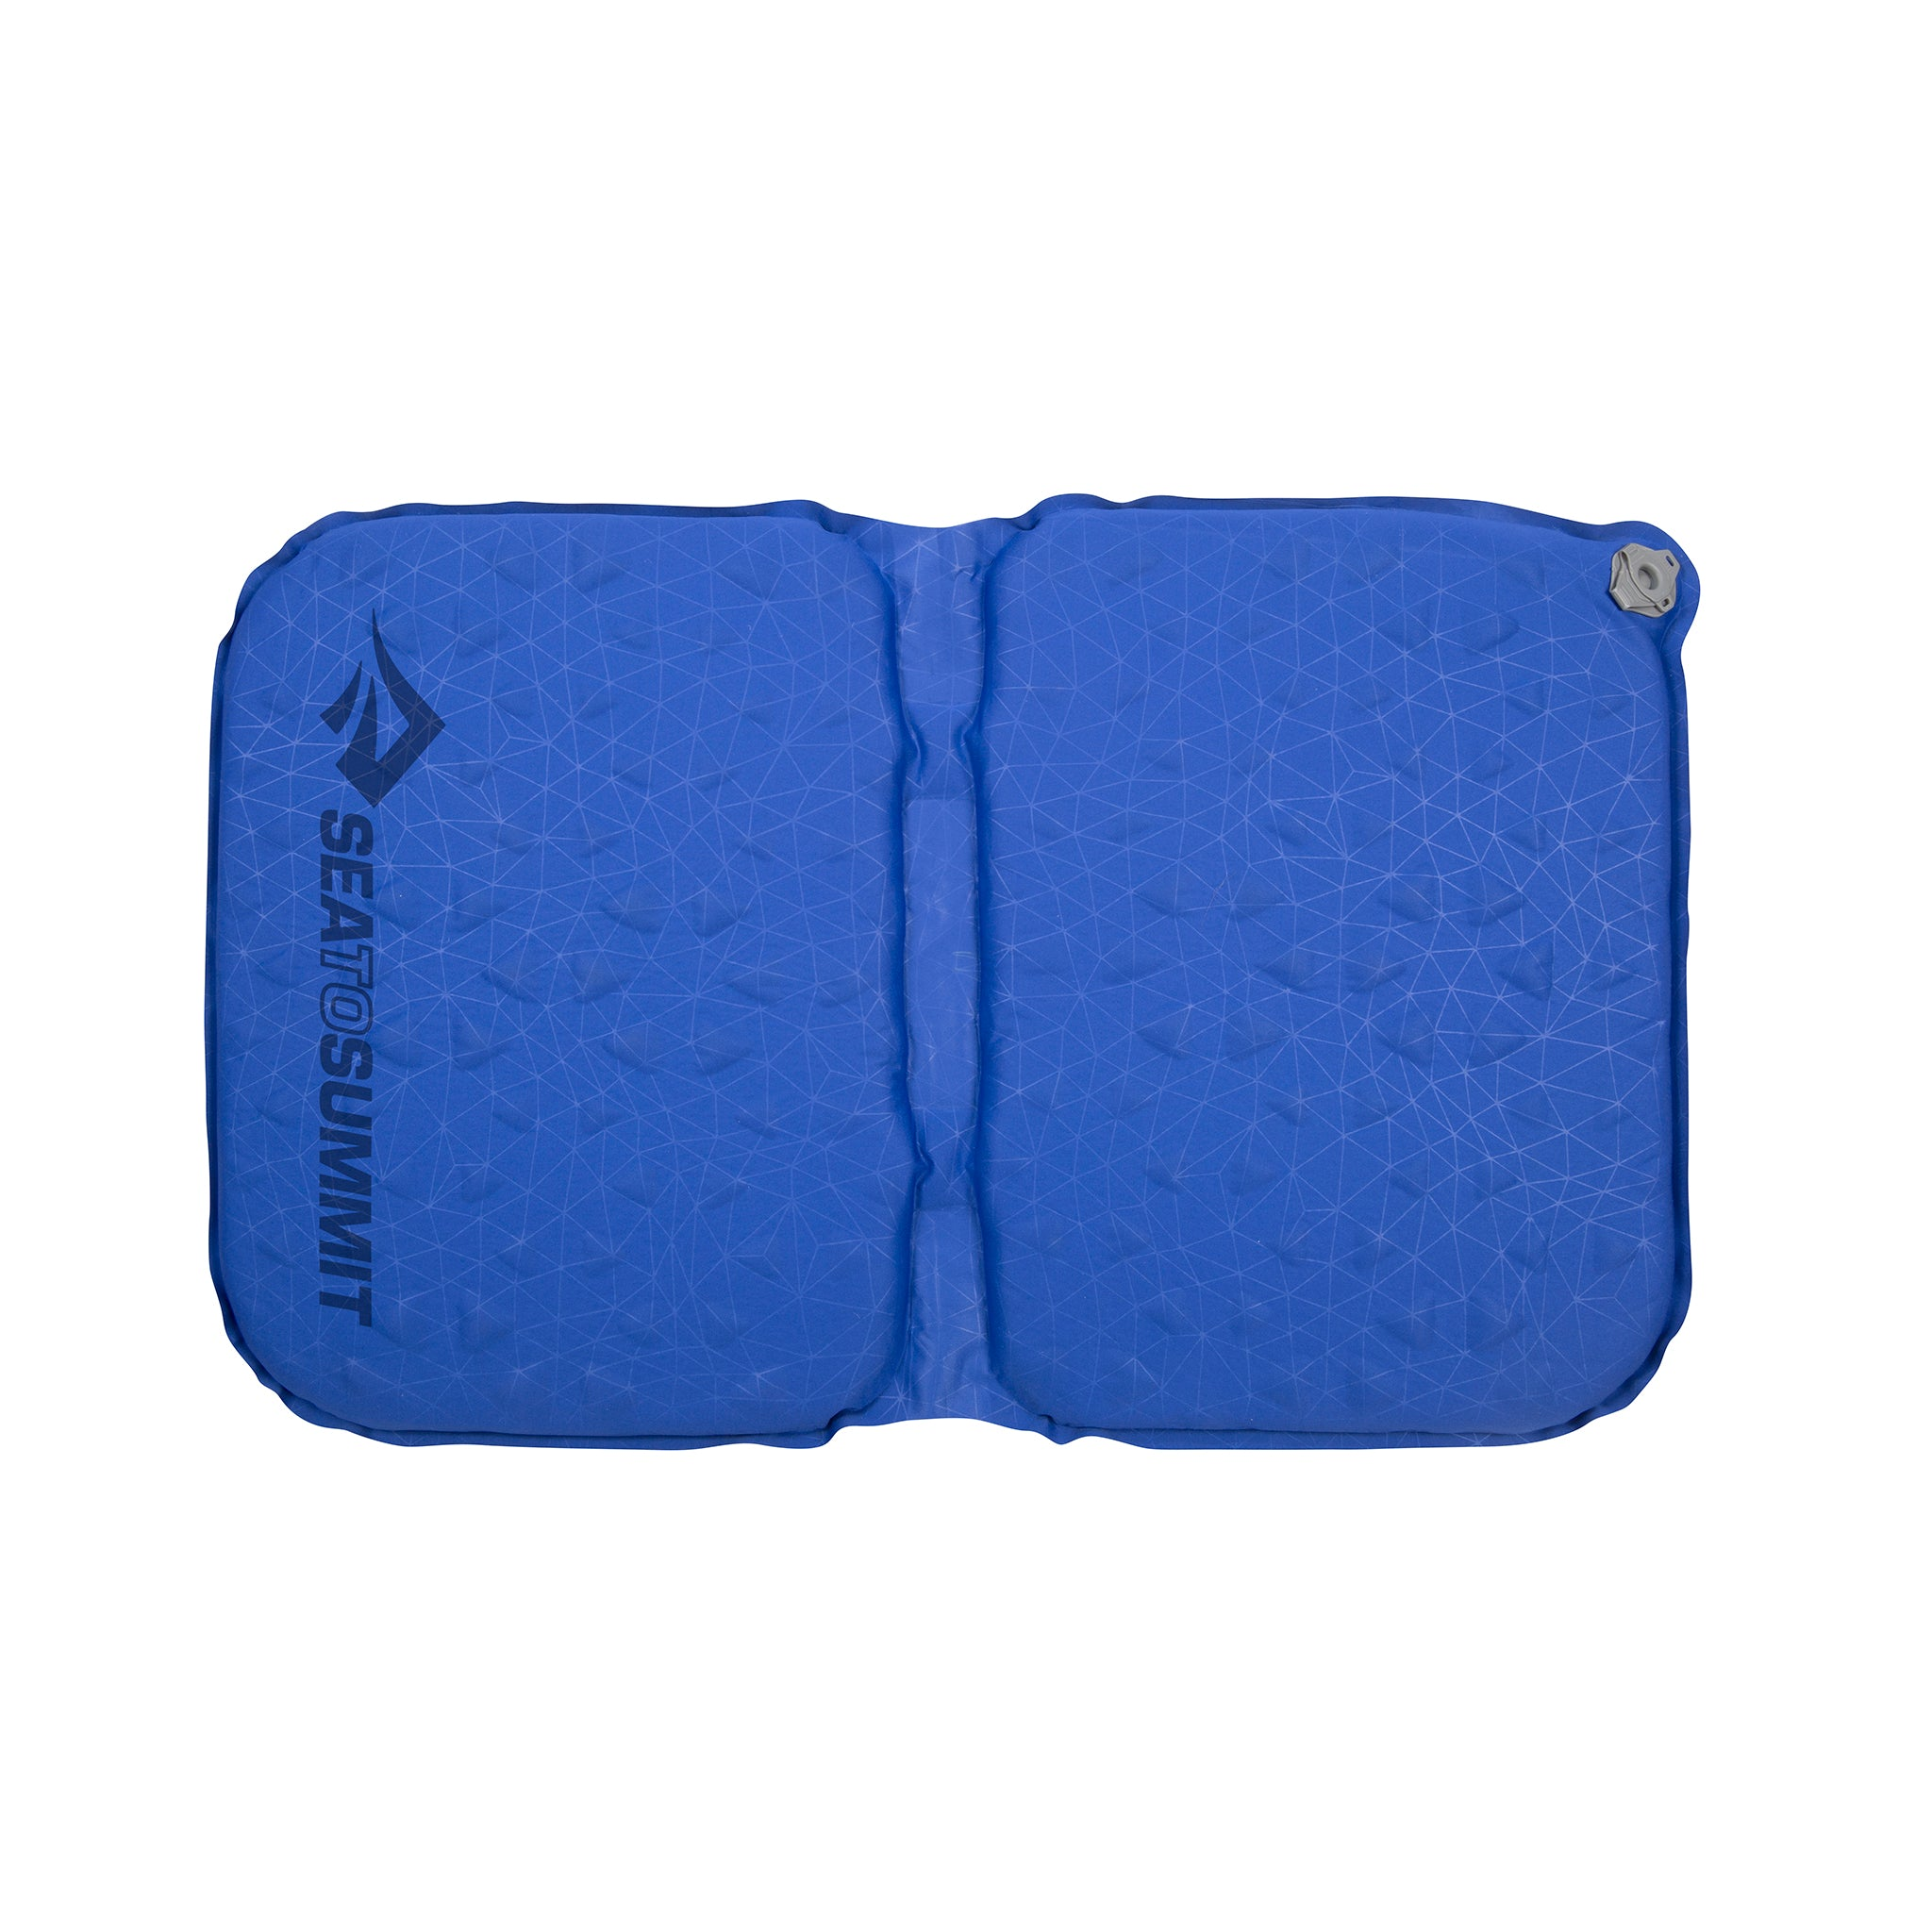 Delta SI V Seat _ foam football stadium seat cushion with back support